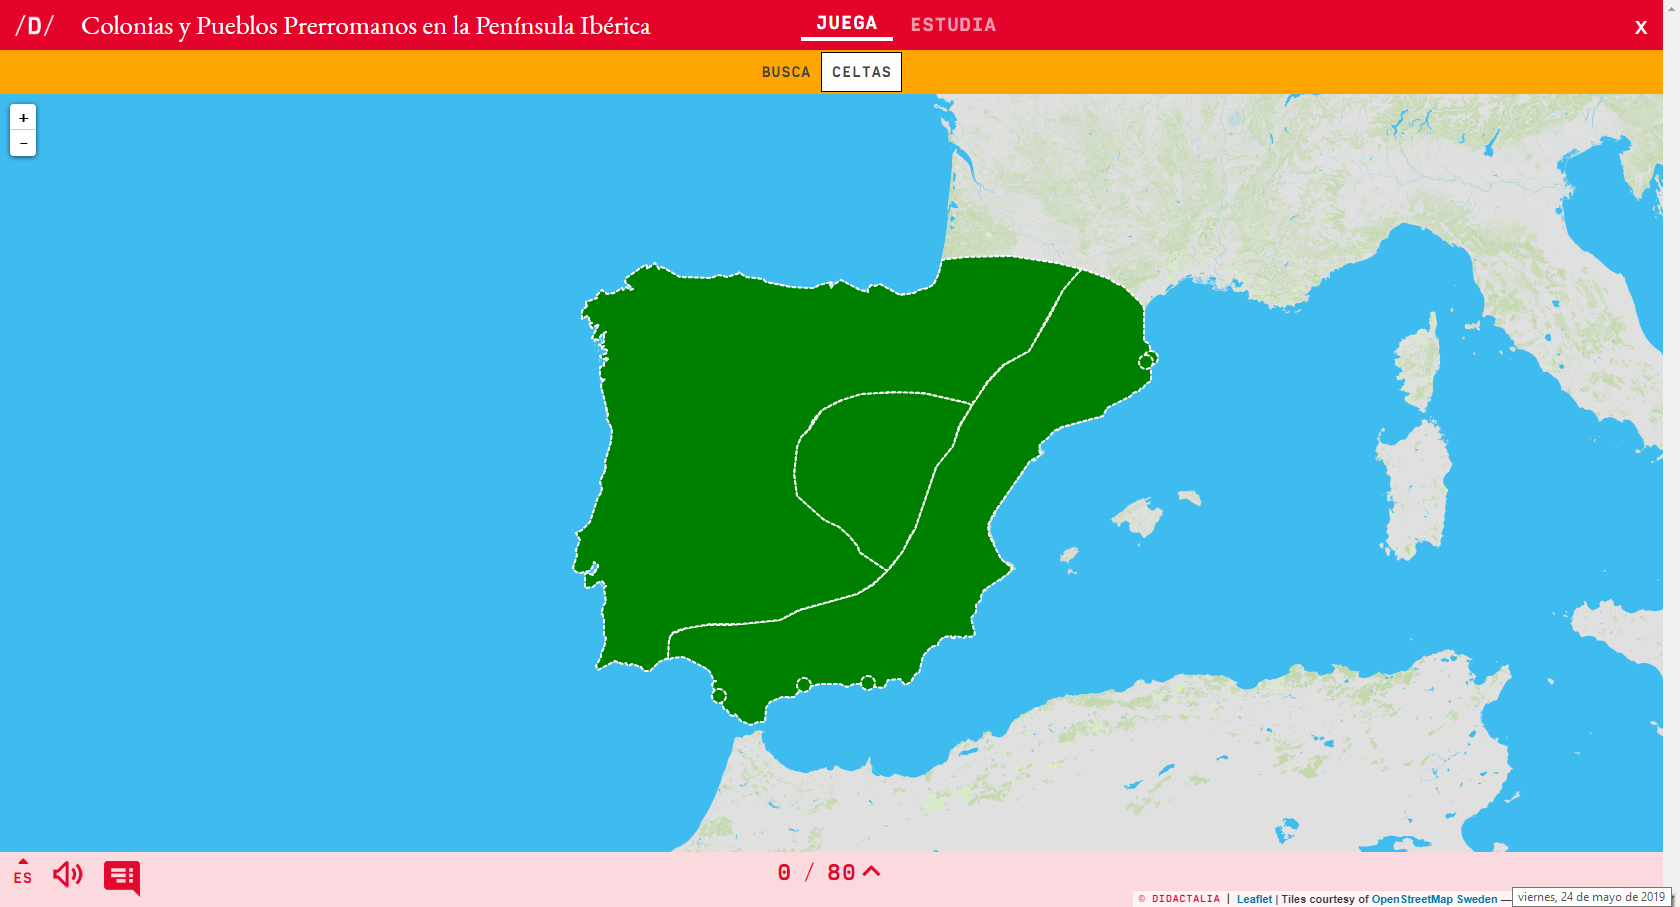 Capitals and Pre-Roman Peoples in the Iberian Peninsula